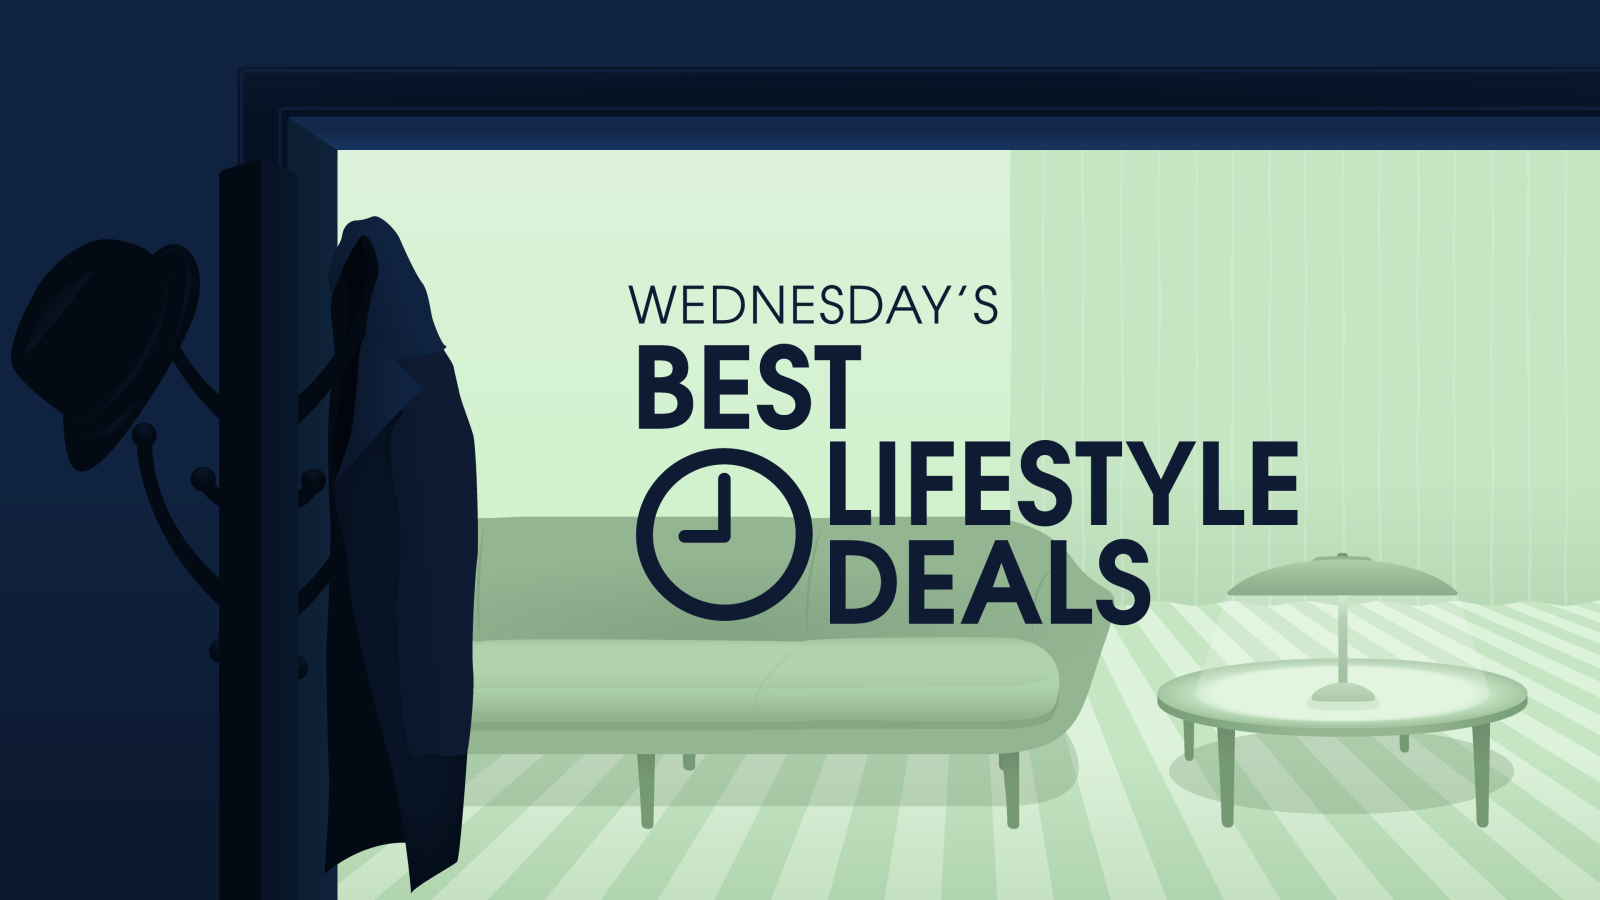 Wednesday's Best Lifestyle Deals: The North Face, Banana Republic, Keurig, more